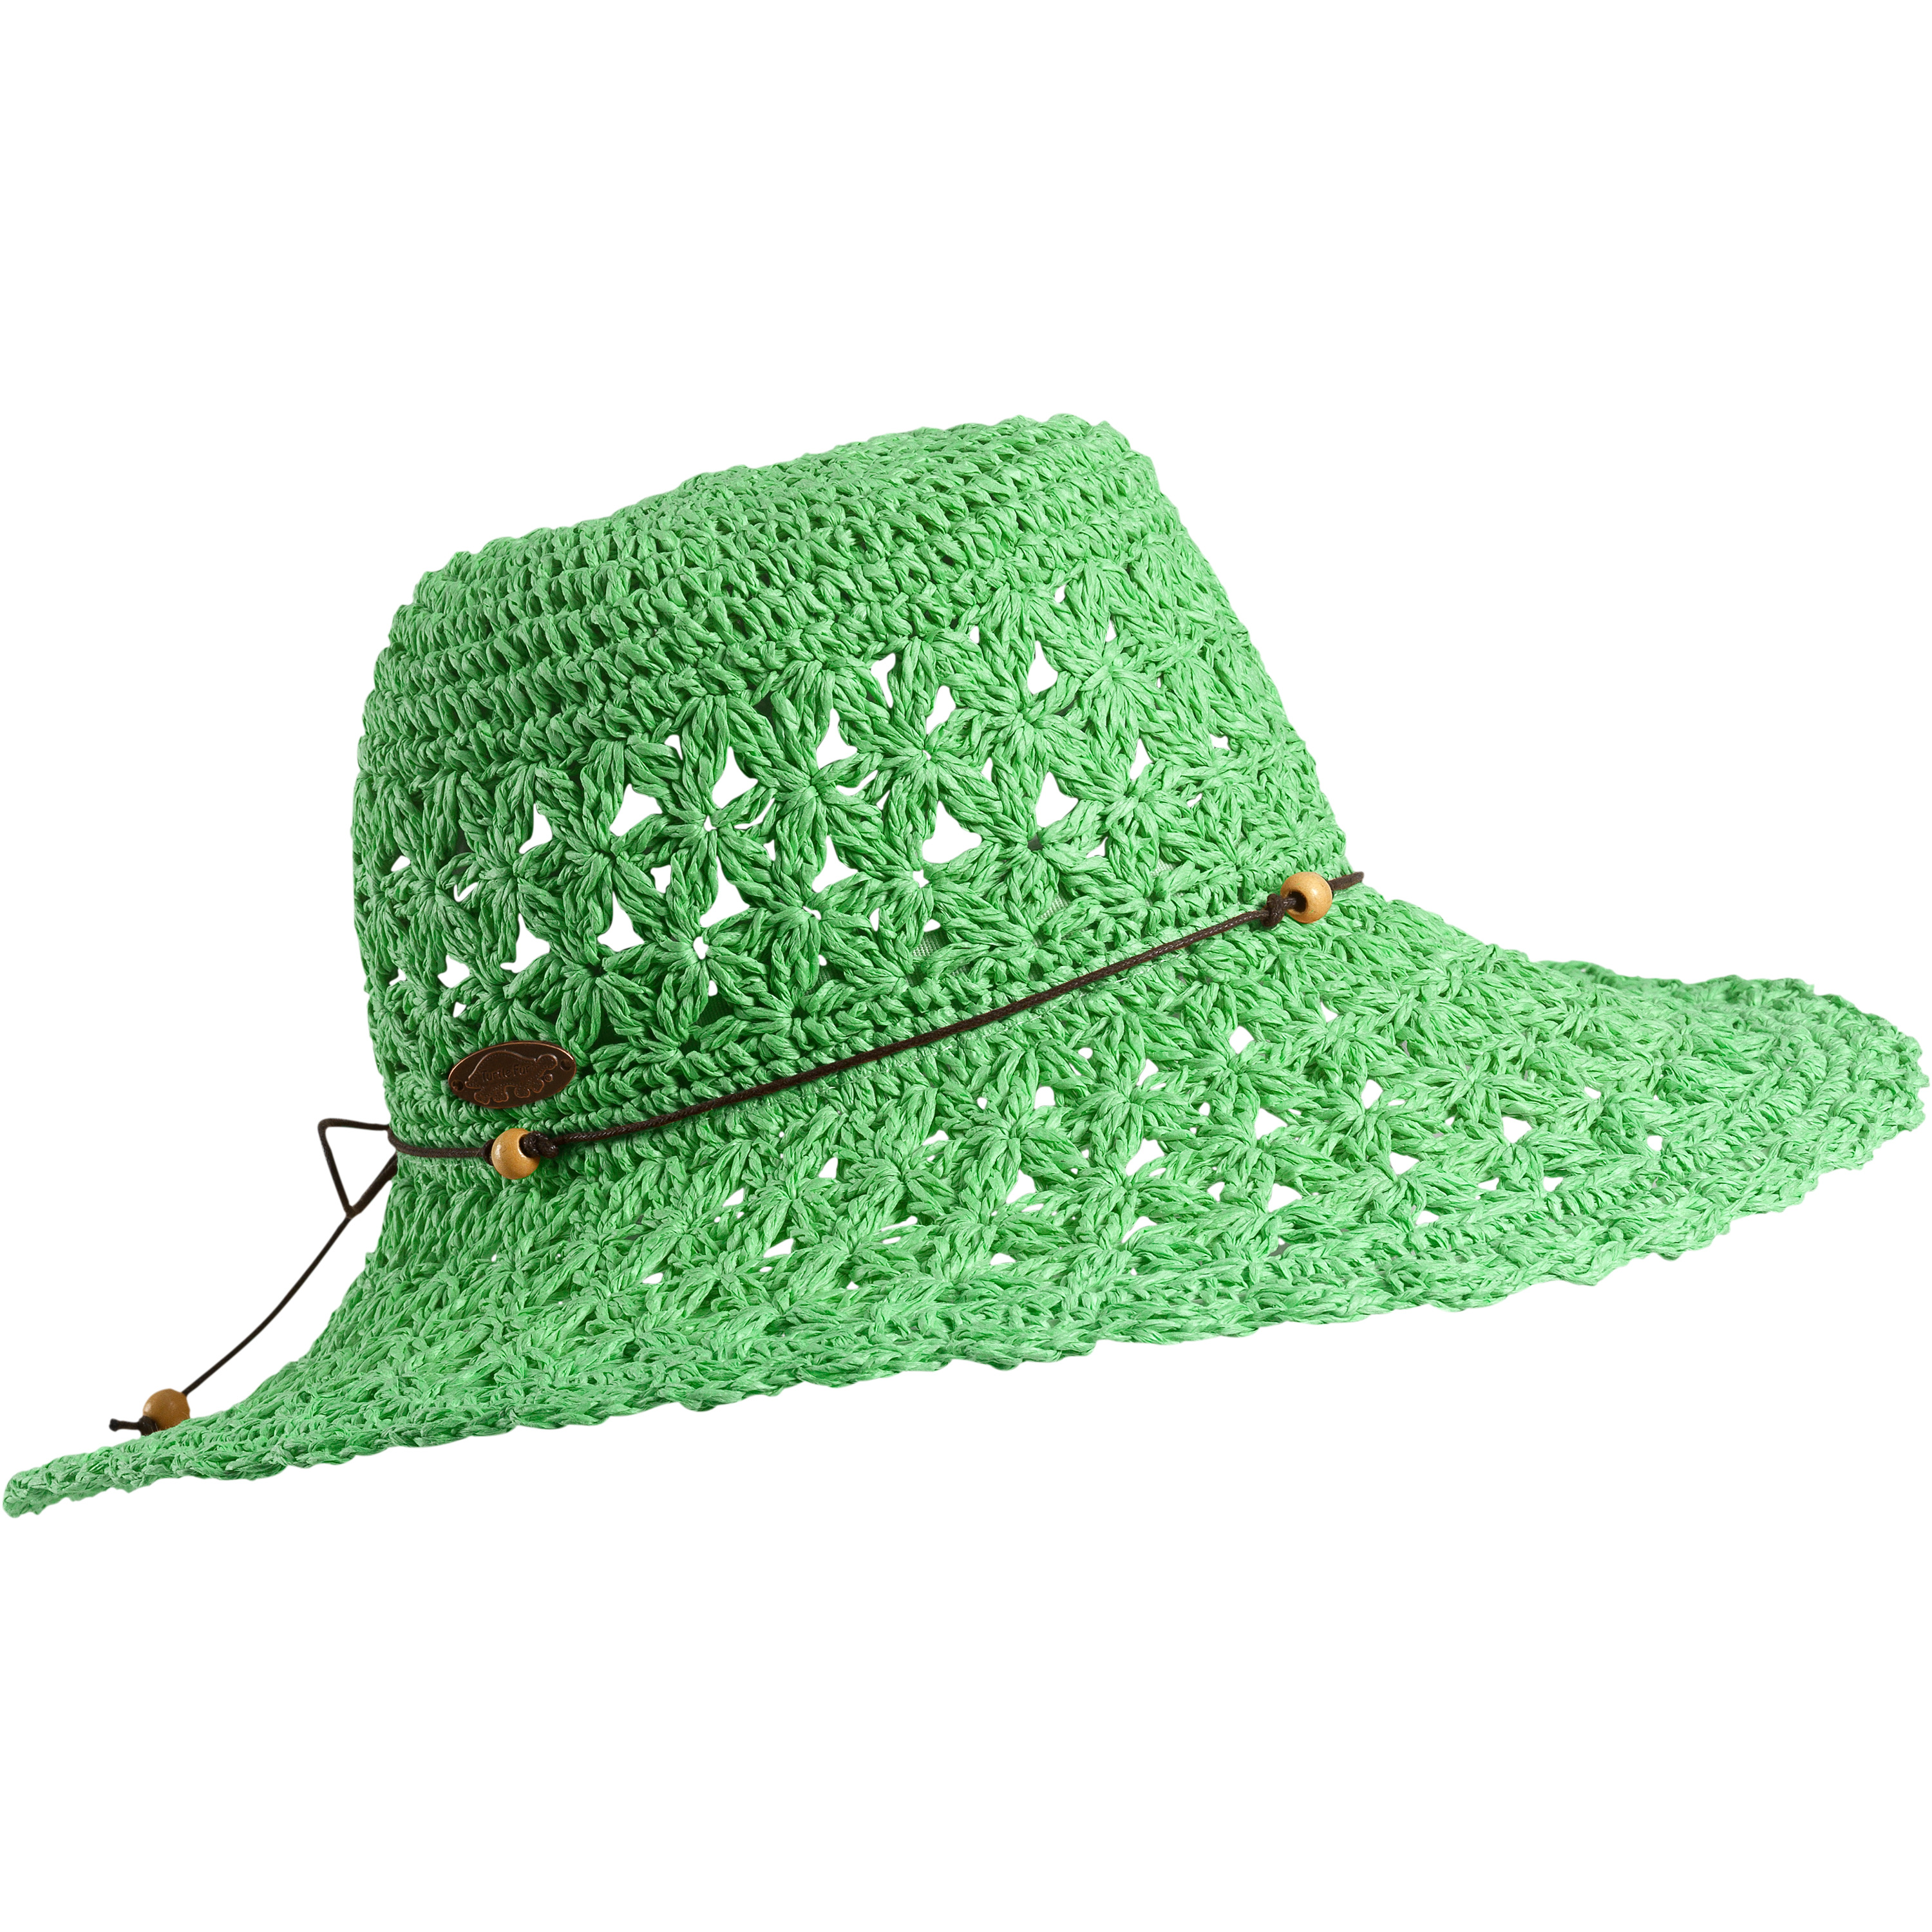 Turtle Fur Chara Women's Floppy Oversized Brim Straw Beach Sun Hat Vermont Collection Sun Style